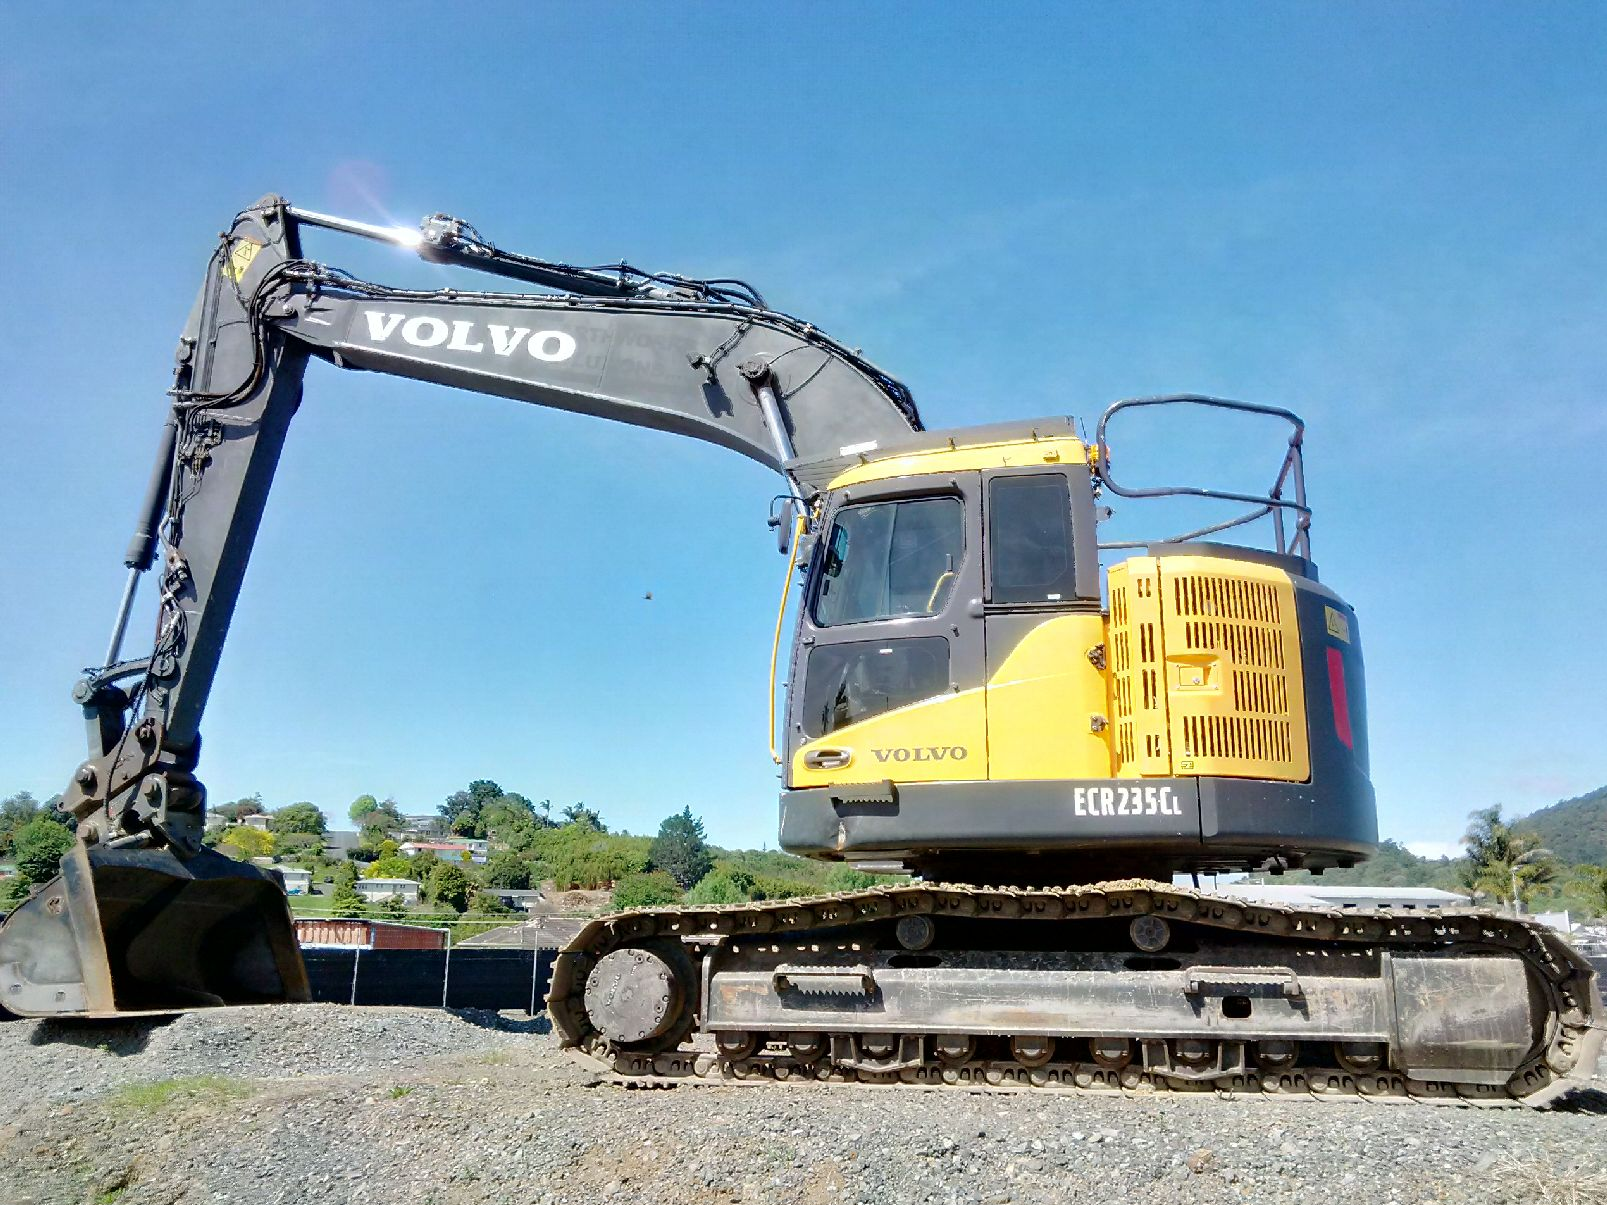 Volvo EC235CL, fitted with Hyd hitch and Robur tilt bucket